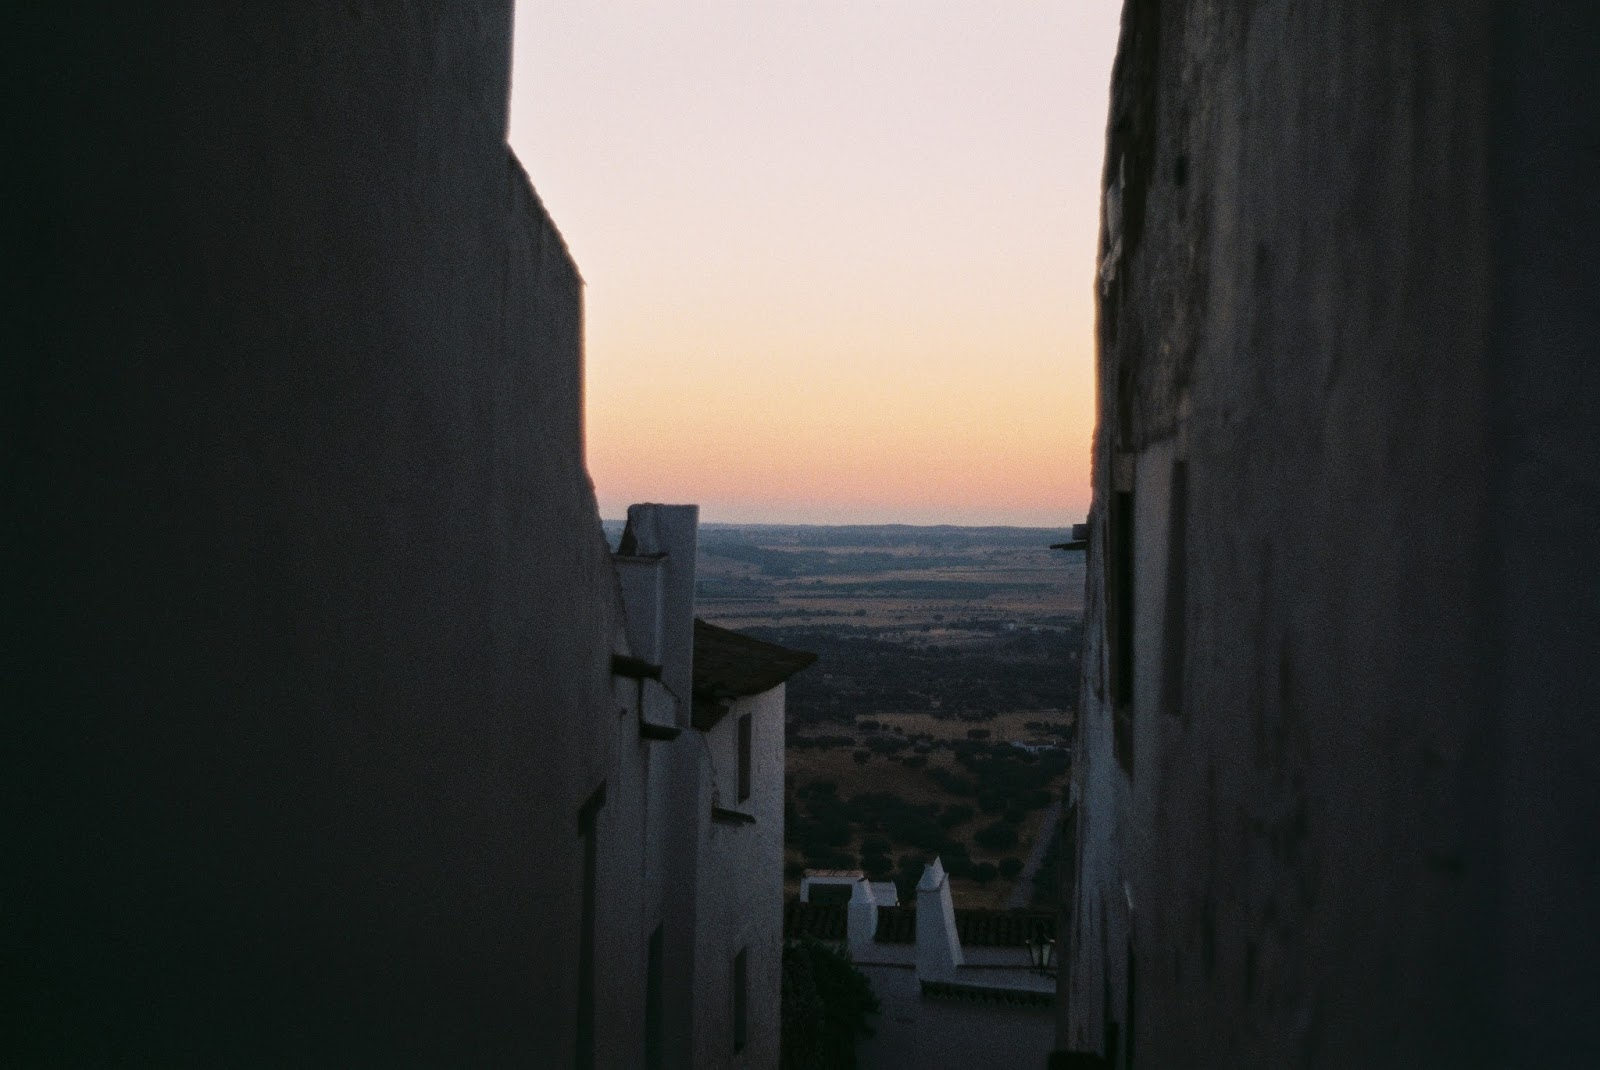 Alentejo Travel Guide - Landscapes & Sunsets | oandrajos.blogspot.co.uk